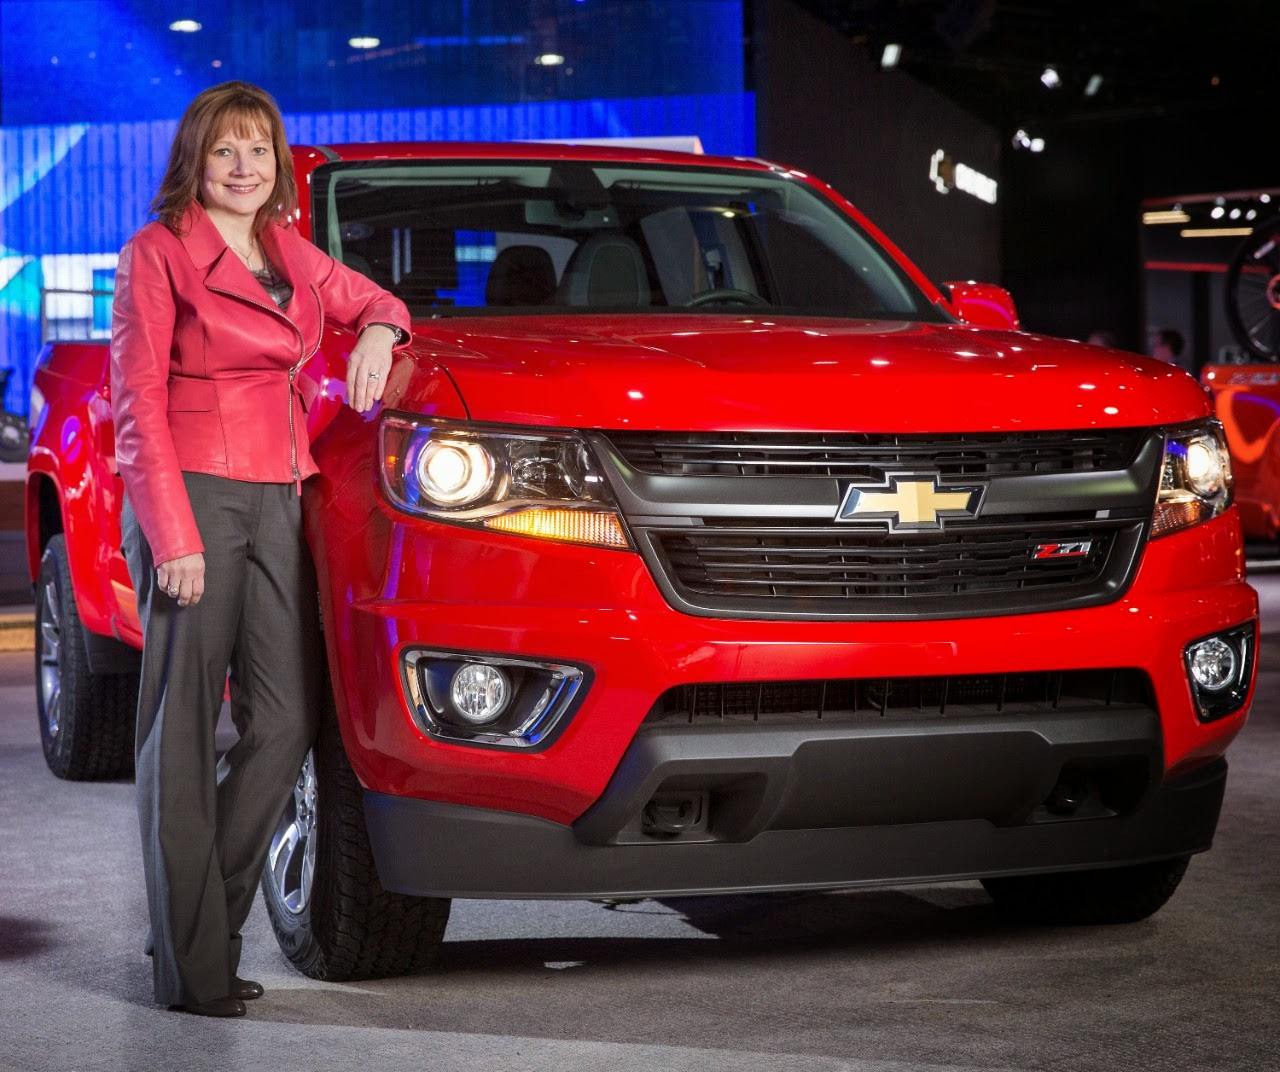 2015 Chevy Colorado Wins Best Pickup of 2015